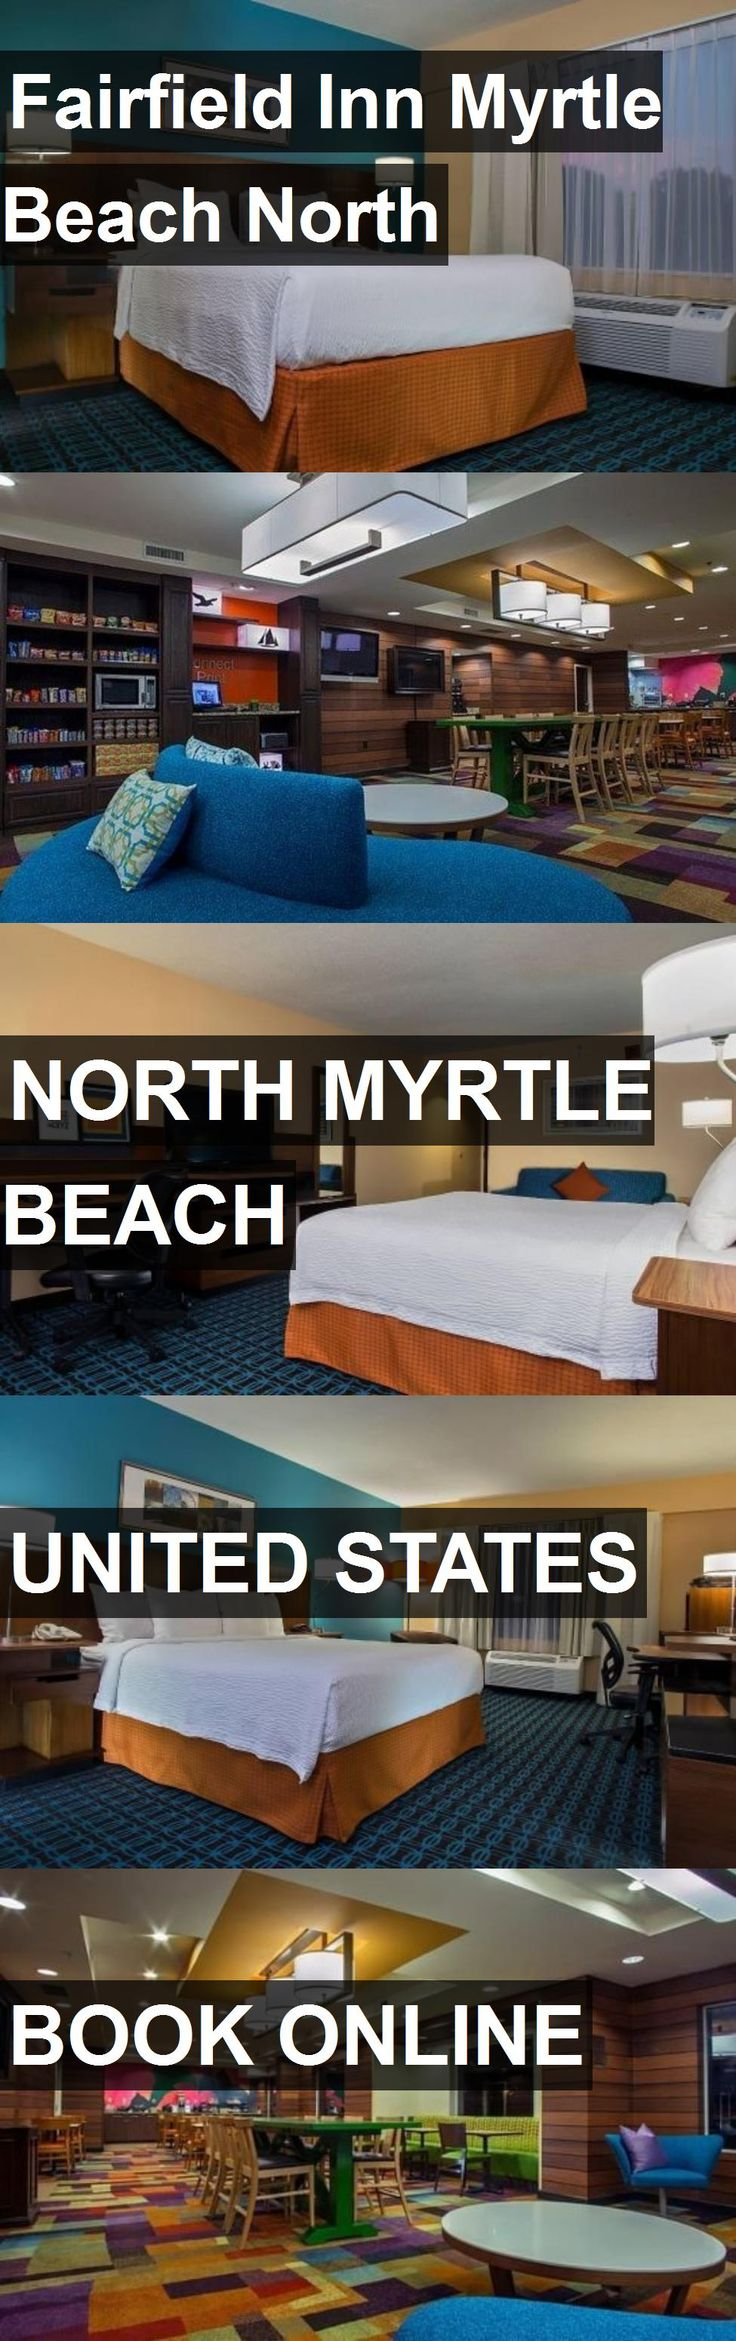 Hotel Fairfield Inn Myrtle Beach North in North Myrtle Beach, United States. For more information, photos, reviews and best prices please follow the link. #UnitedStates #NorthMyrtleBeach #travel #vacation #hotel